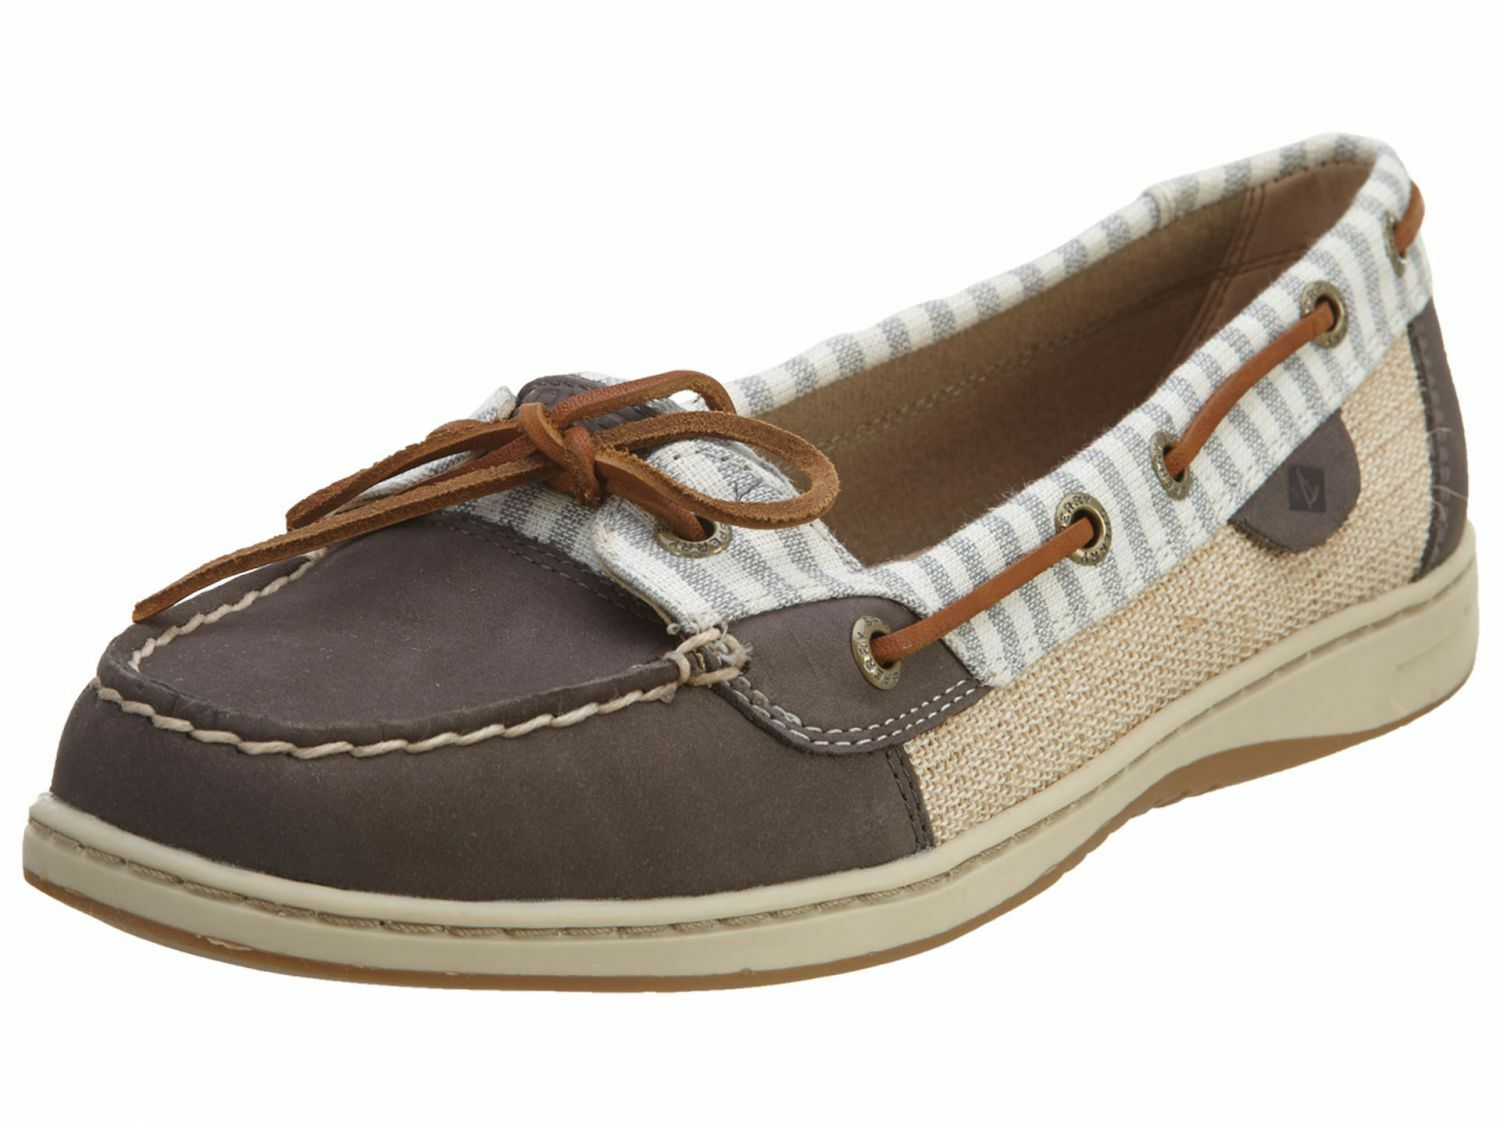 New Women's Sperry Top-Sider Angelfish Stripe Boat Shoes Flats SZ 7 8.5